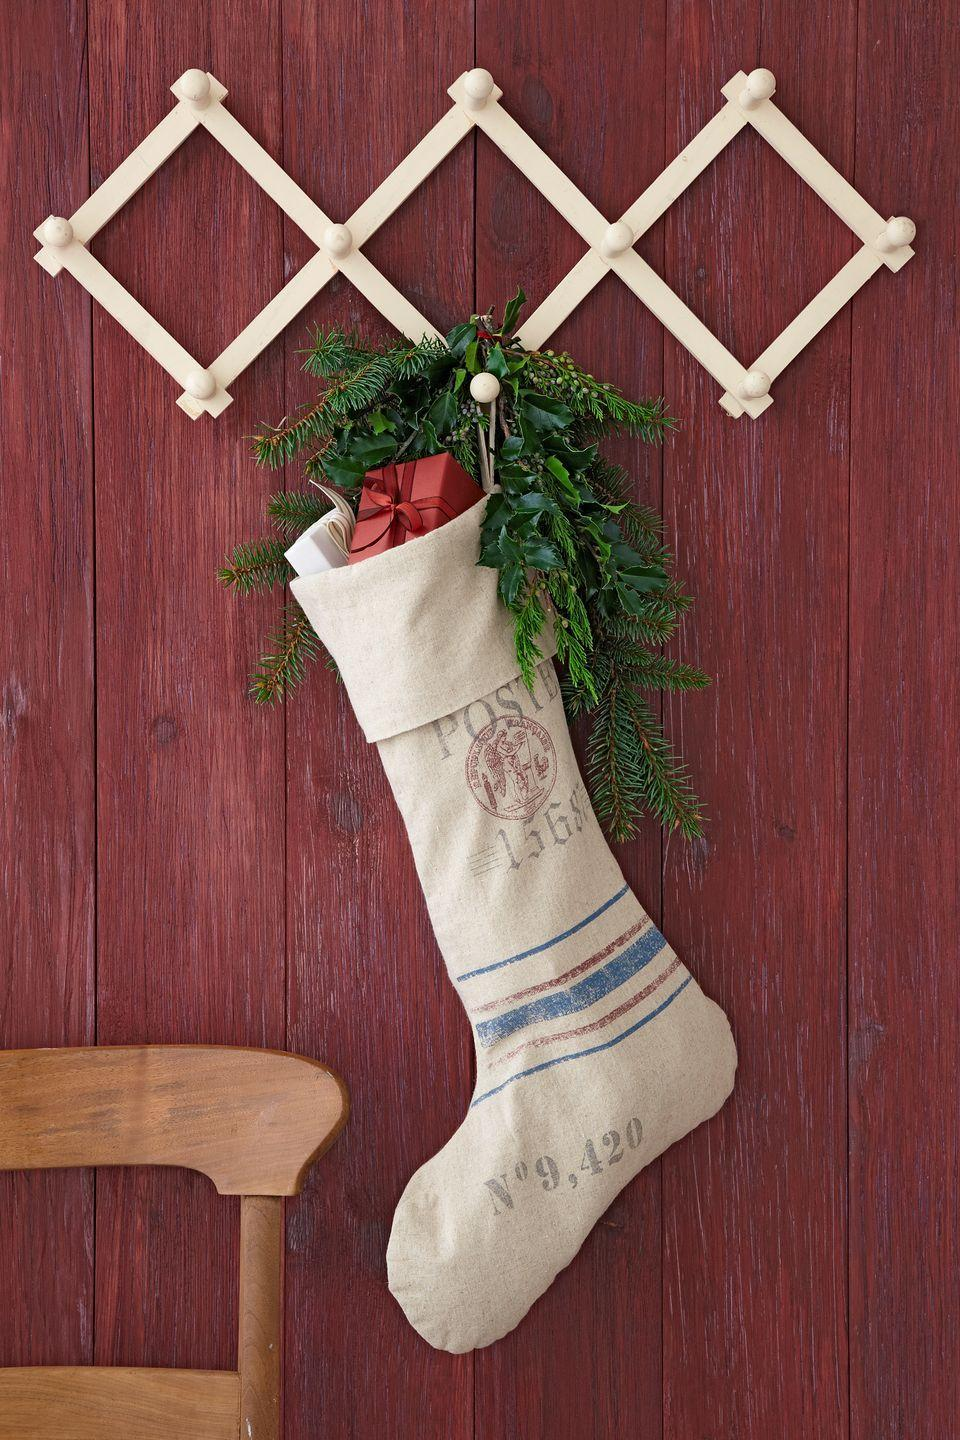 """<p>Reminiscent of a vintage French mailbag, this linen number also happens to be enormous. Translation: more room for presents, and at a jolly low price. Simply stamp with a monogram or add other pretty personalization.<br></p><p><a class=""""link rapid-noclick-resp"""" href=""""https://www.amazon.com/s/ref=nb_sb_noss_2?url=search-alias%3Dgarden&field-keywords=canvas+stocking&tag=syn-yahoo-20&ascsubtag=%5Bartid%7C10050.g.1407%5Bsrc%7Cyahoo-us"""" rel=""""nofollow noopener"""" target=""""_blank"""" data-ylk=""""slk:SHOP CANVAS STOCKINGS"""">SHOP CANVAS STOCKINGS</a></p>"""